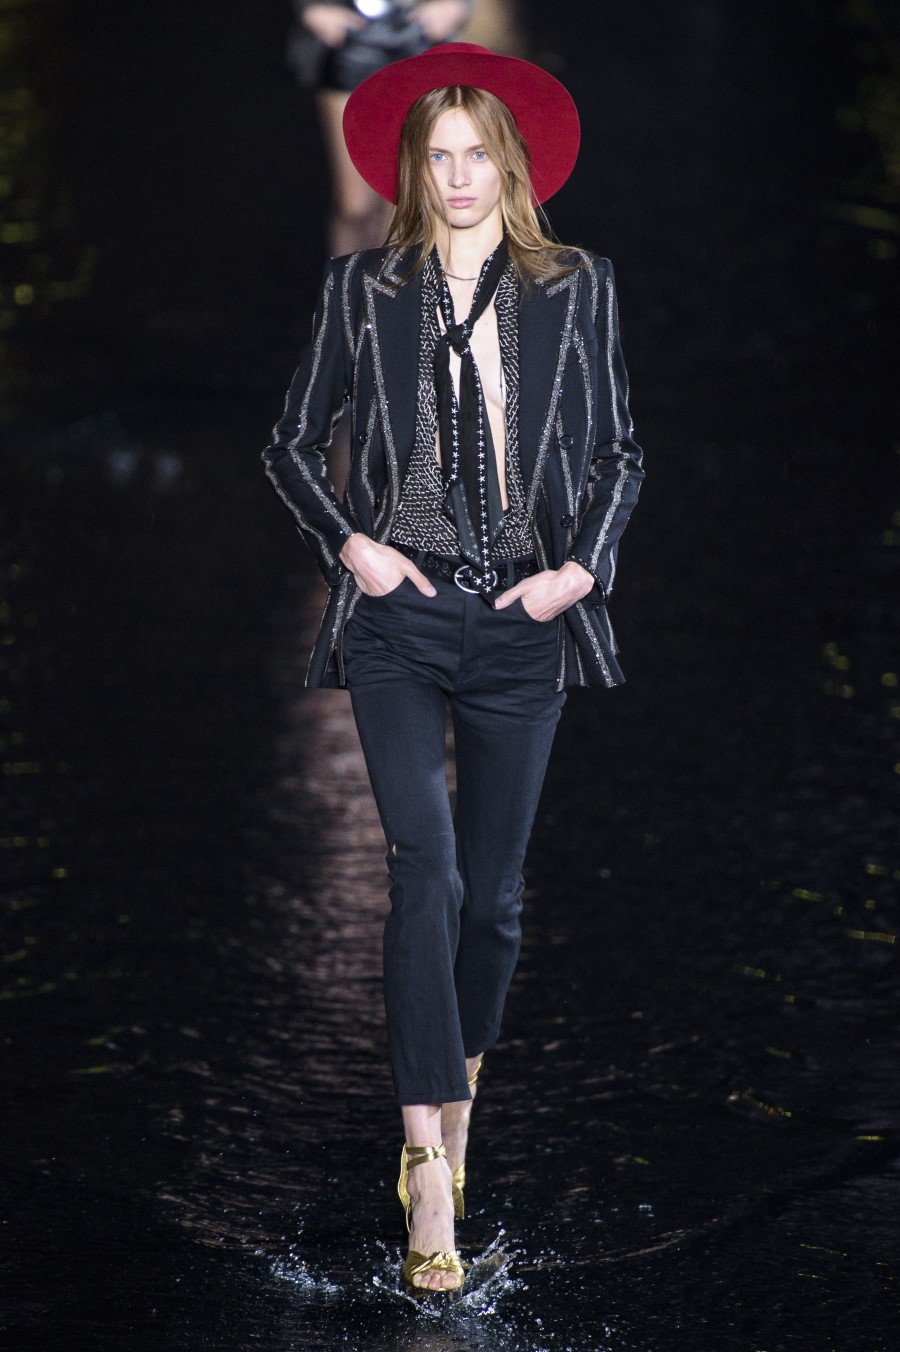 Saint Laurent Spring Summer 2019 – Paris Fashion Week